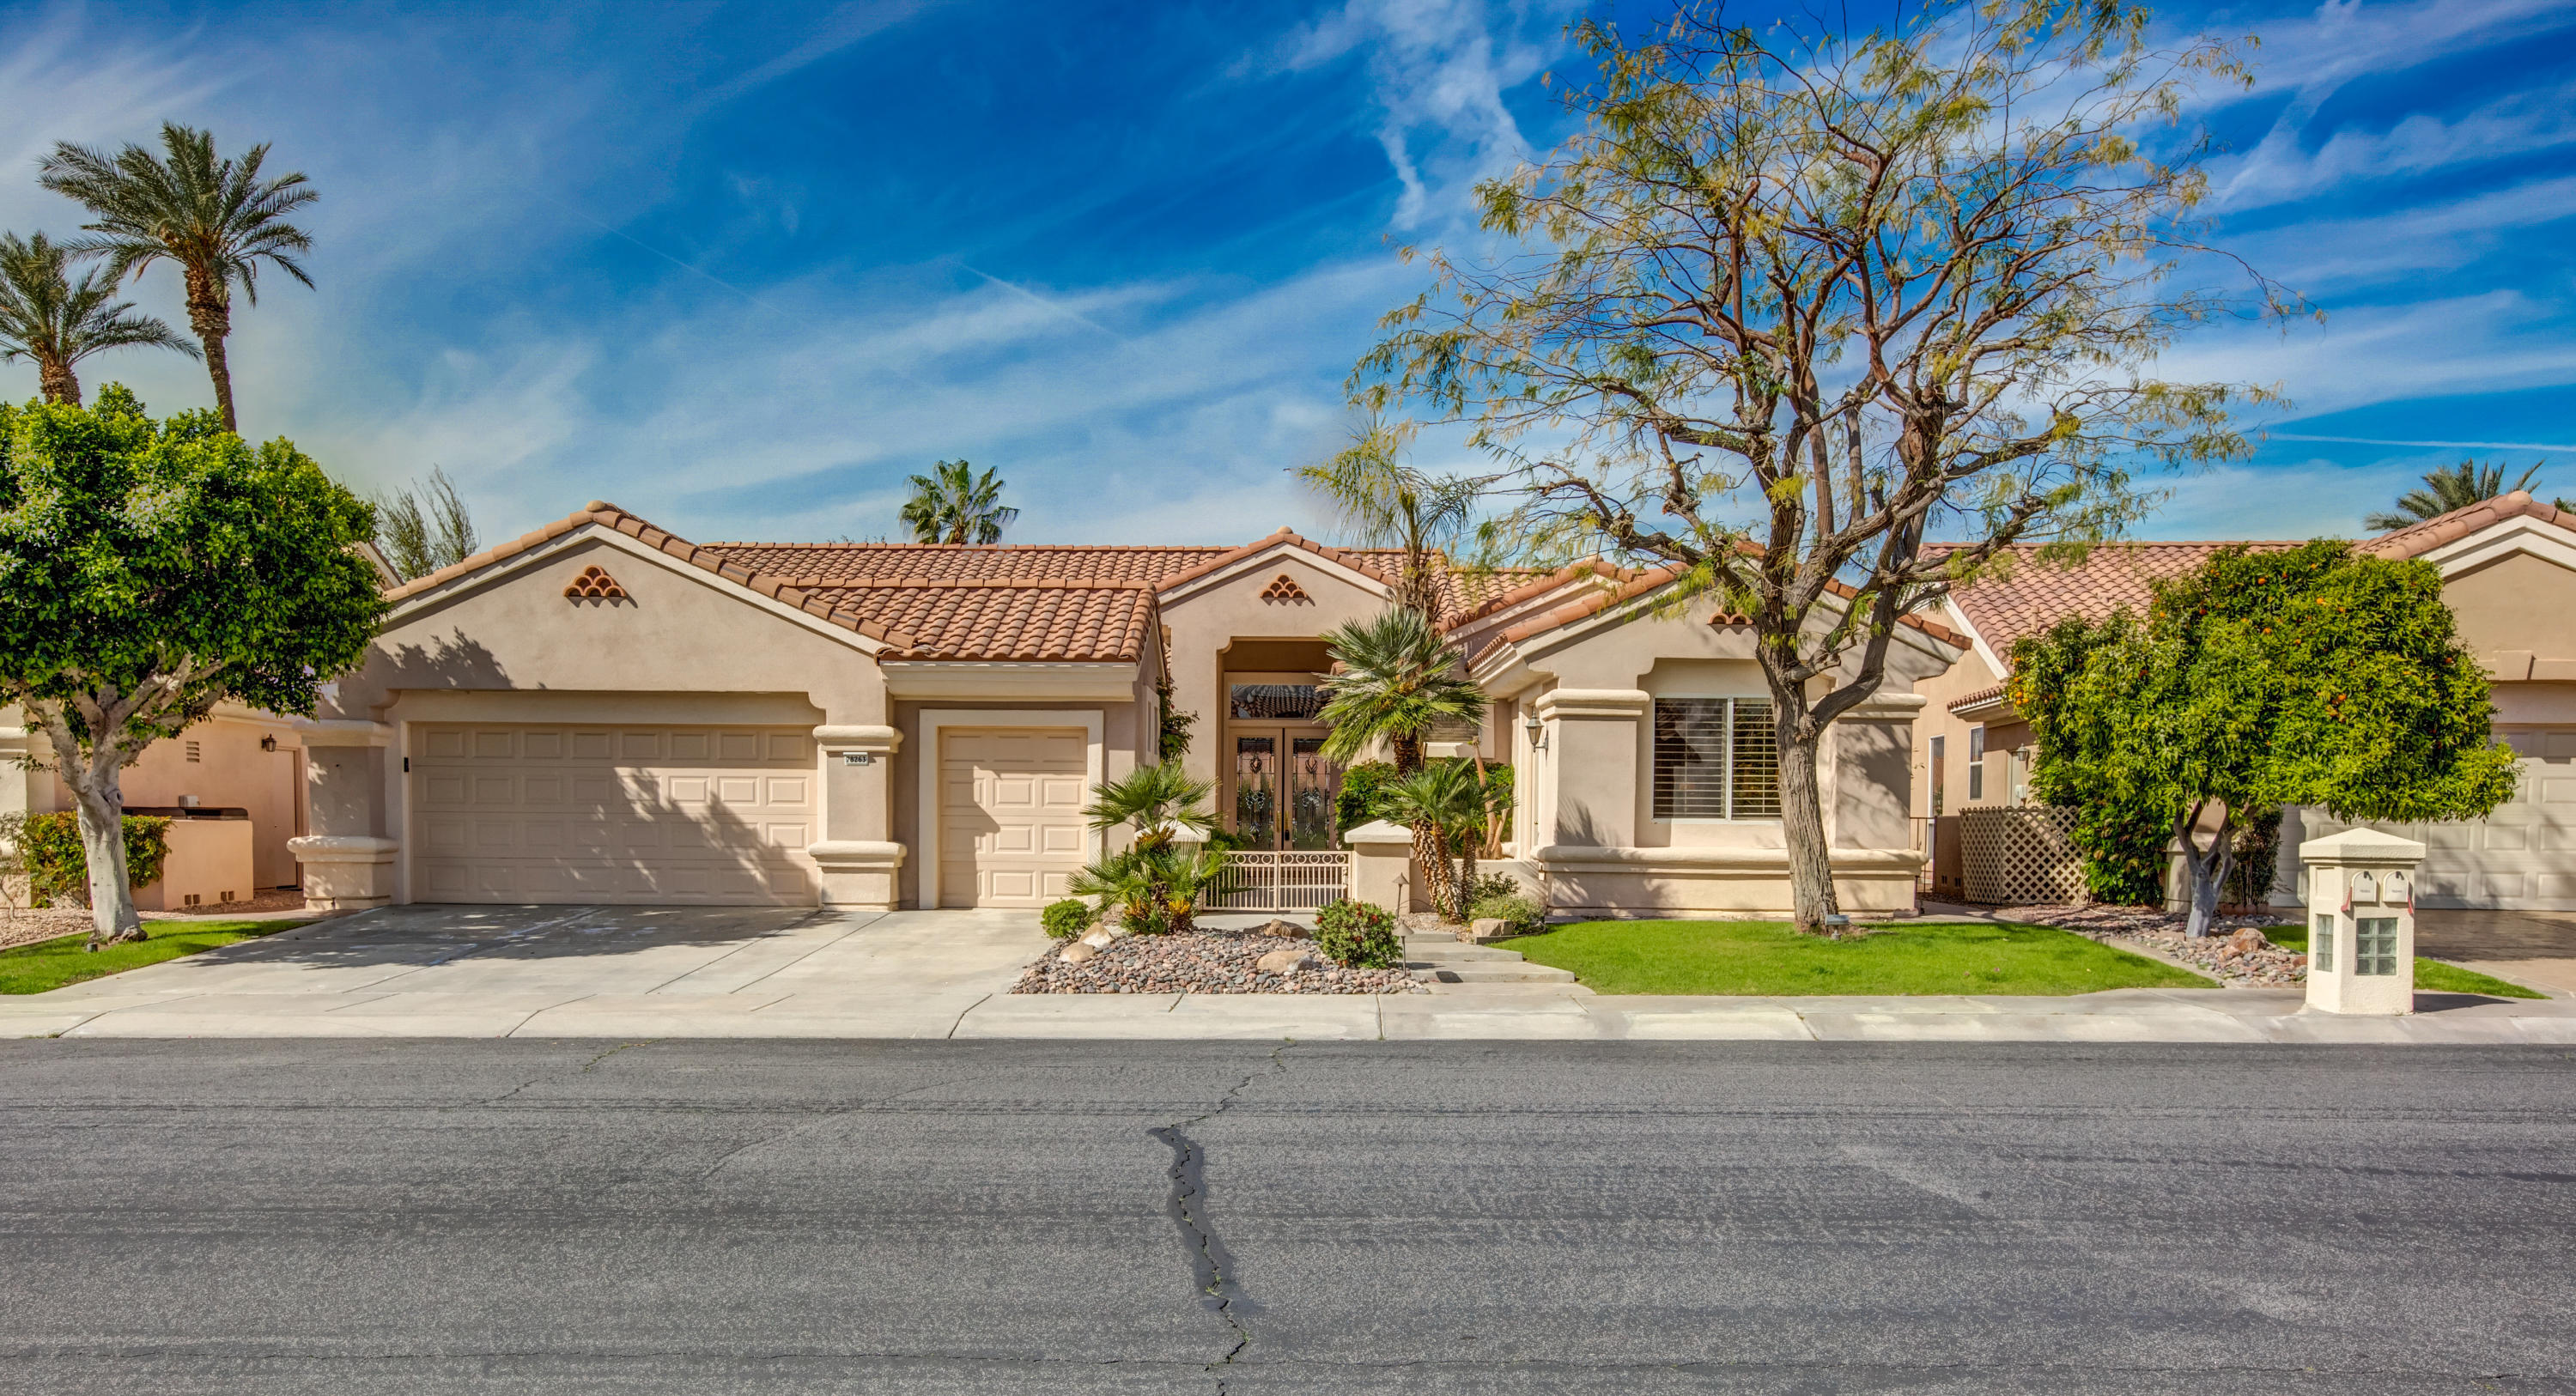 Photo of 78263 Golden Reed Drive, Palm Desert, CA 92211